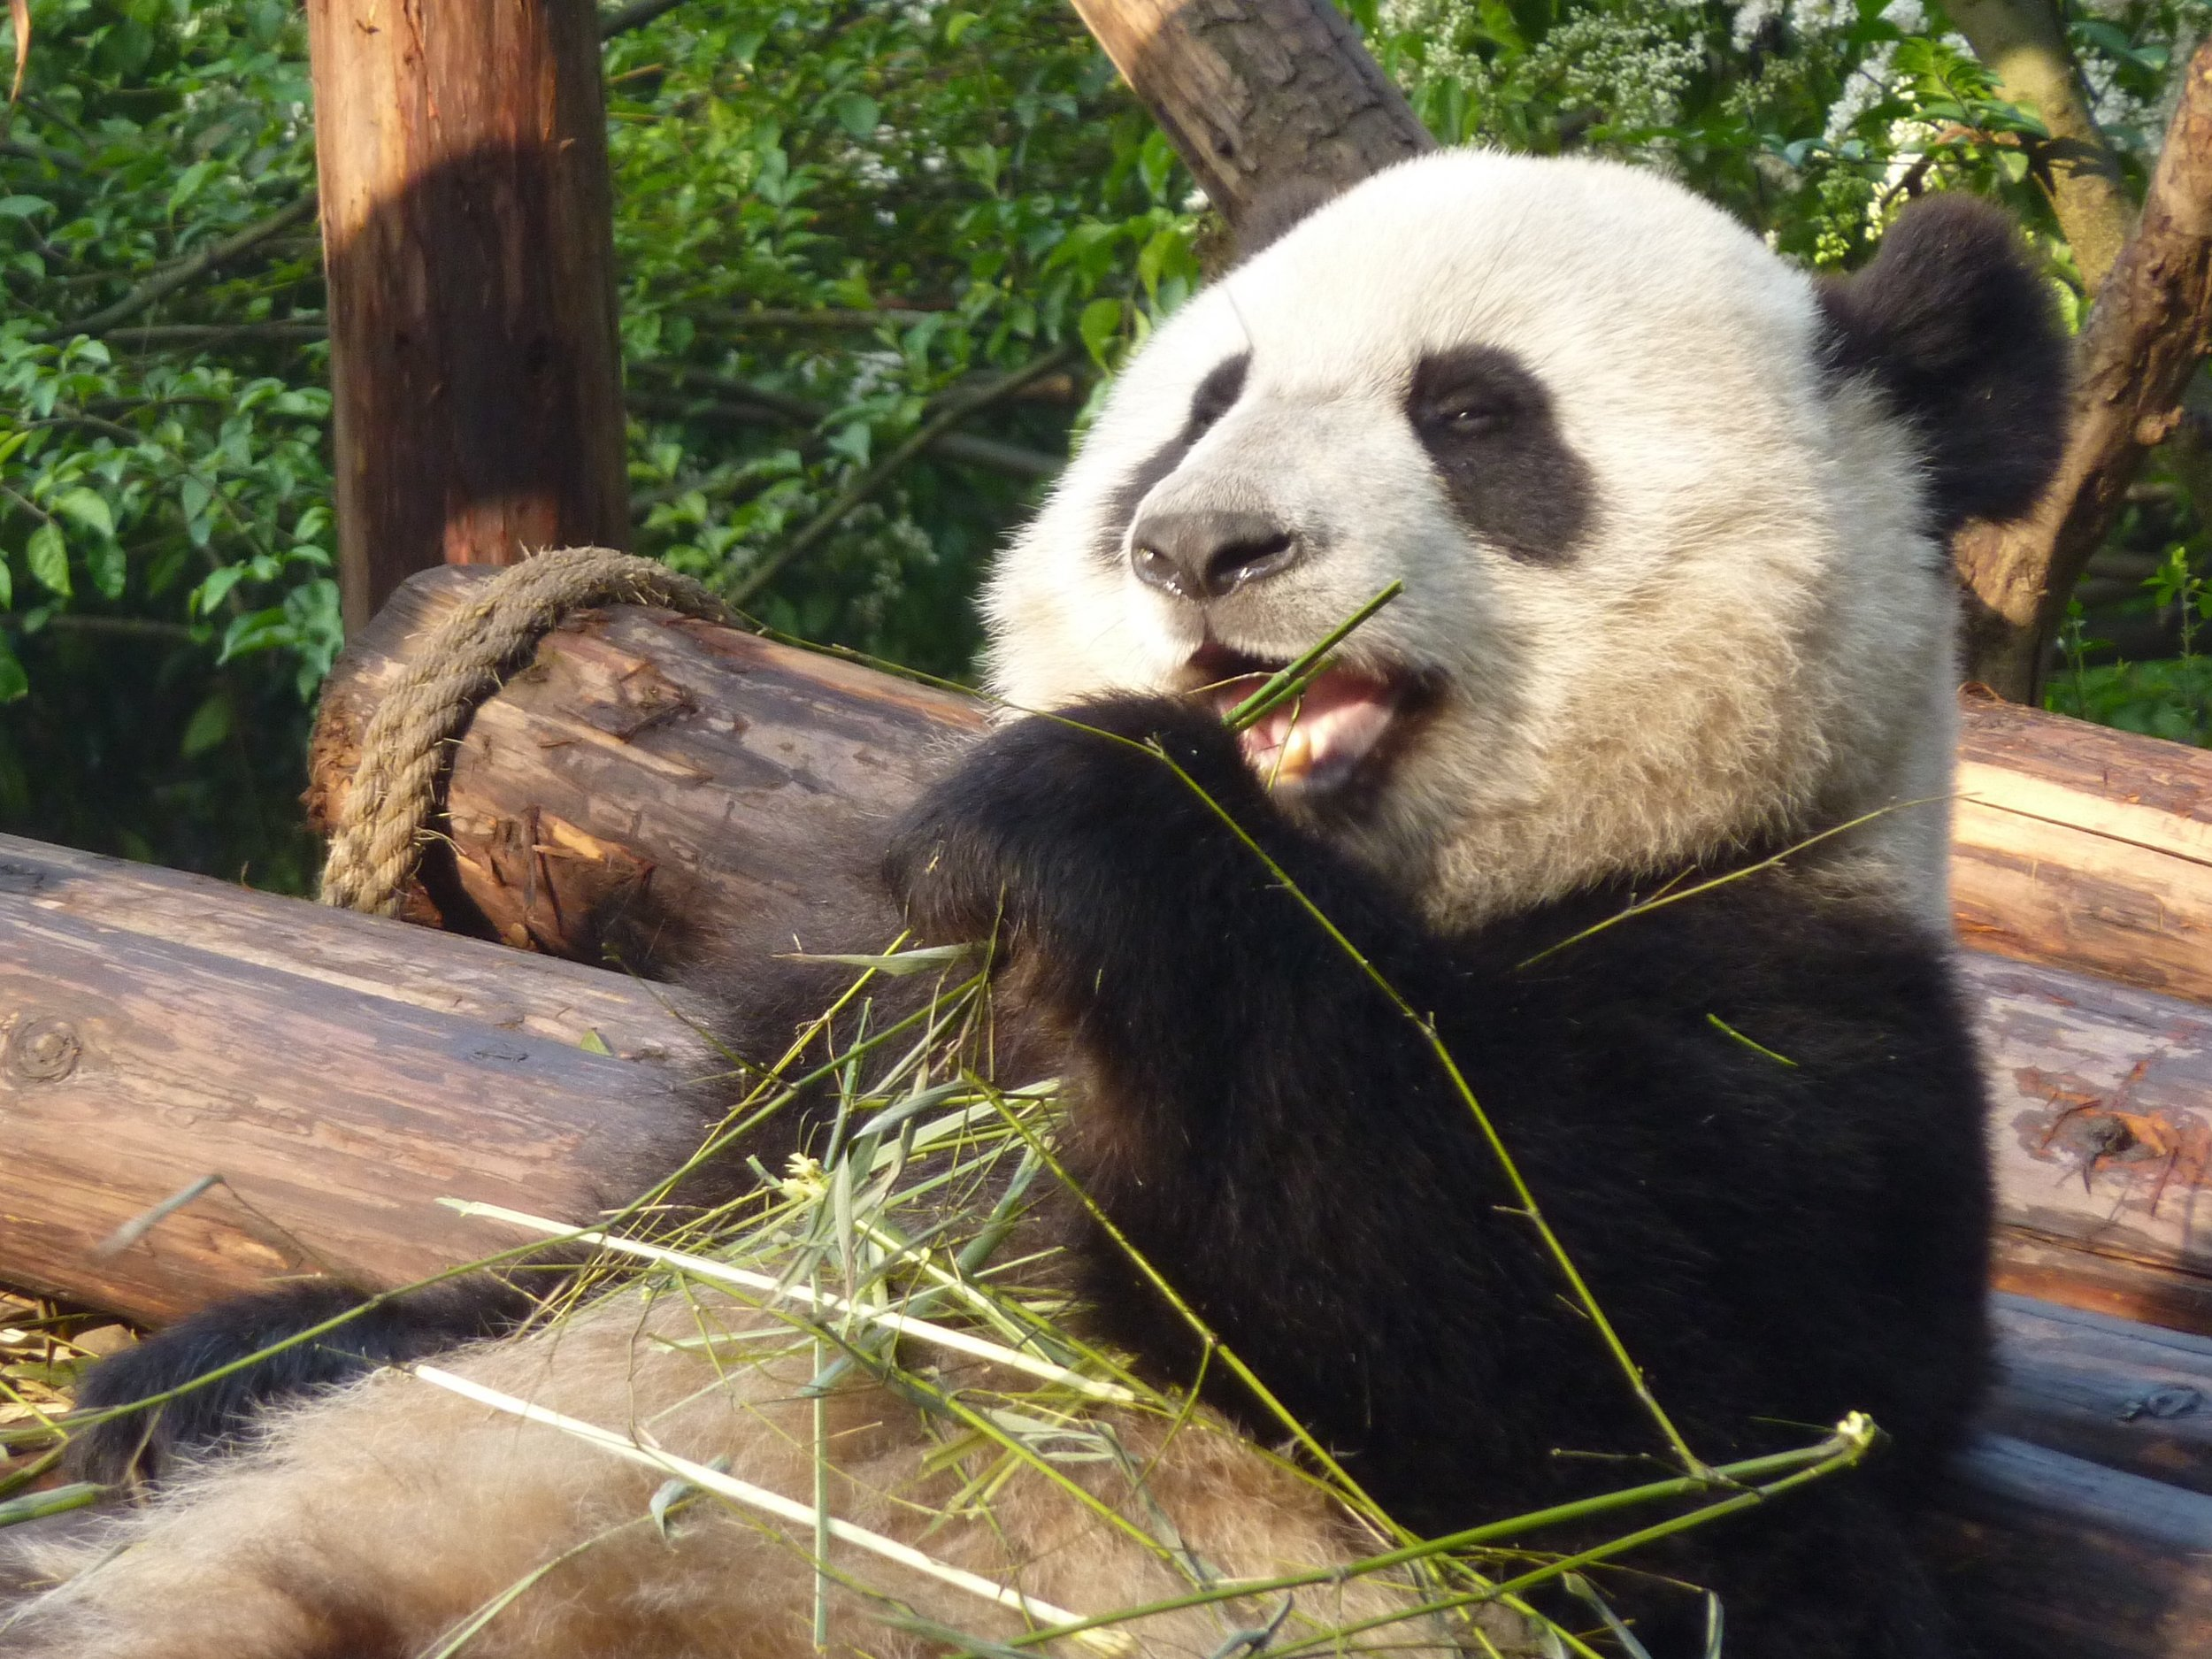 Image by Ms. Jackson via Flickr.com.  Image shows panda eating bamboo.